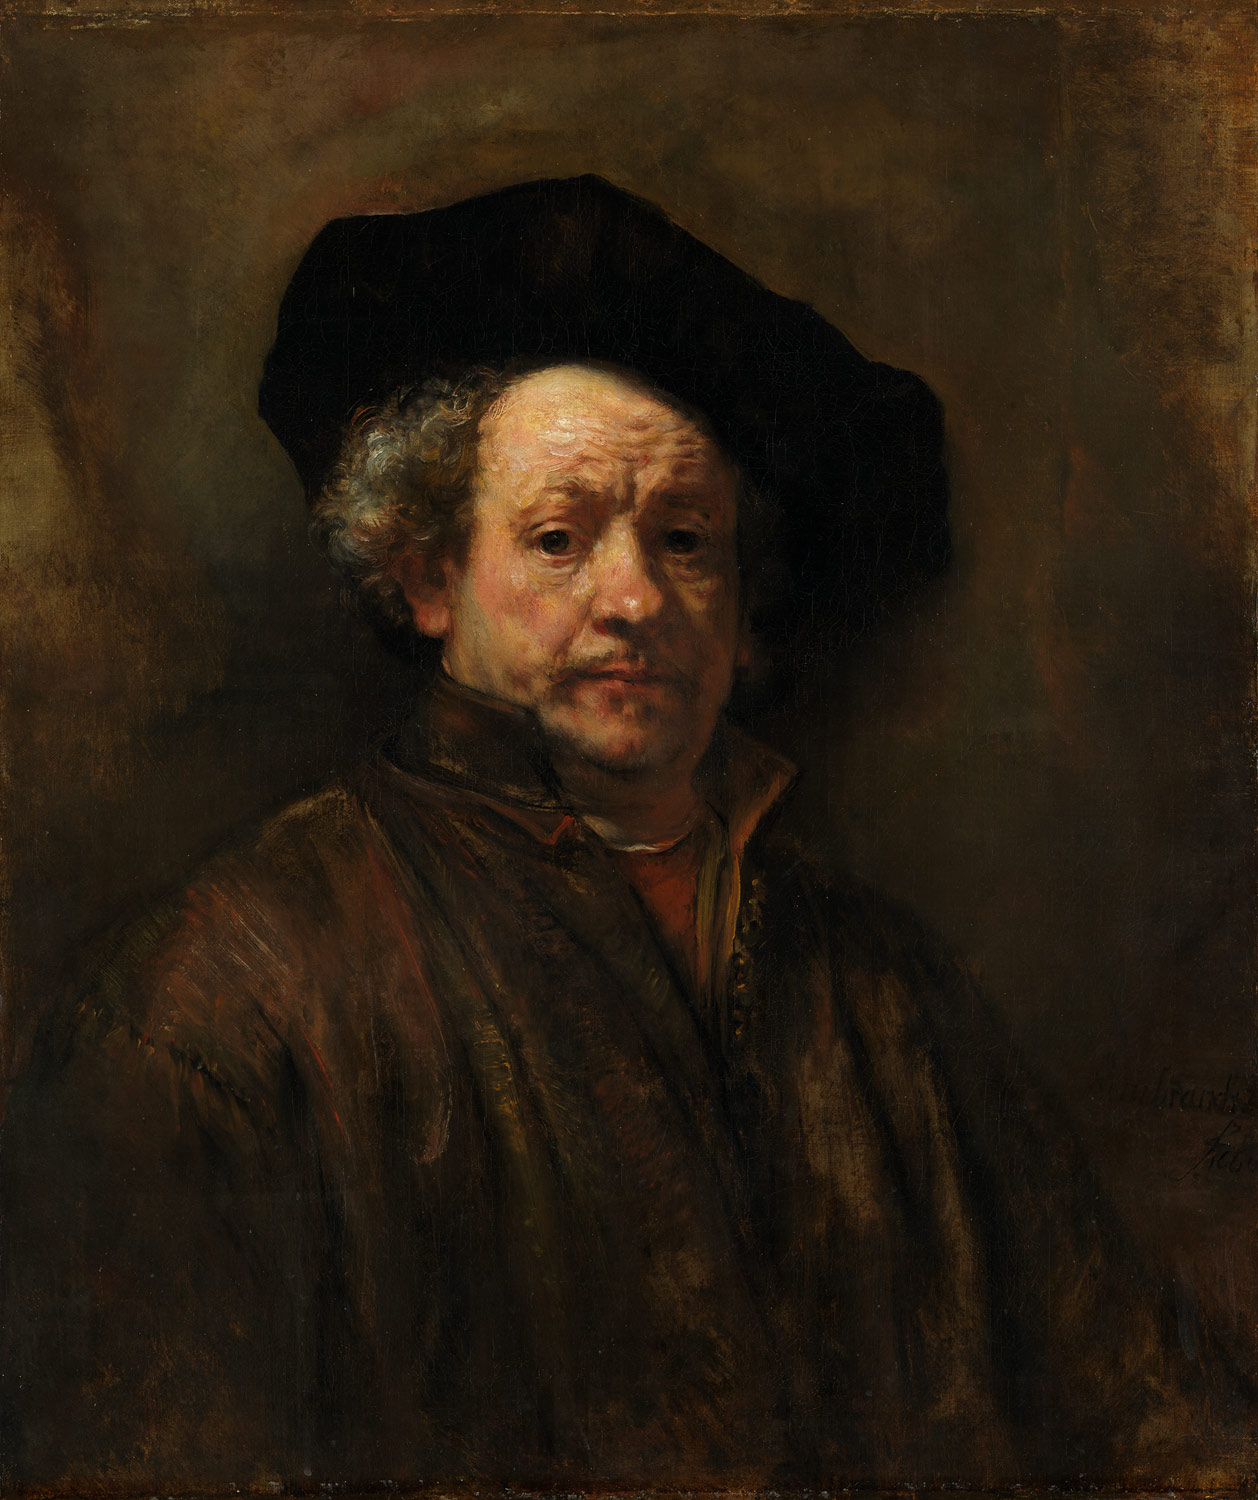 Rembrandt,  Self-Portrait,  1660, oil on canvas